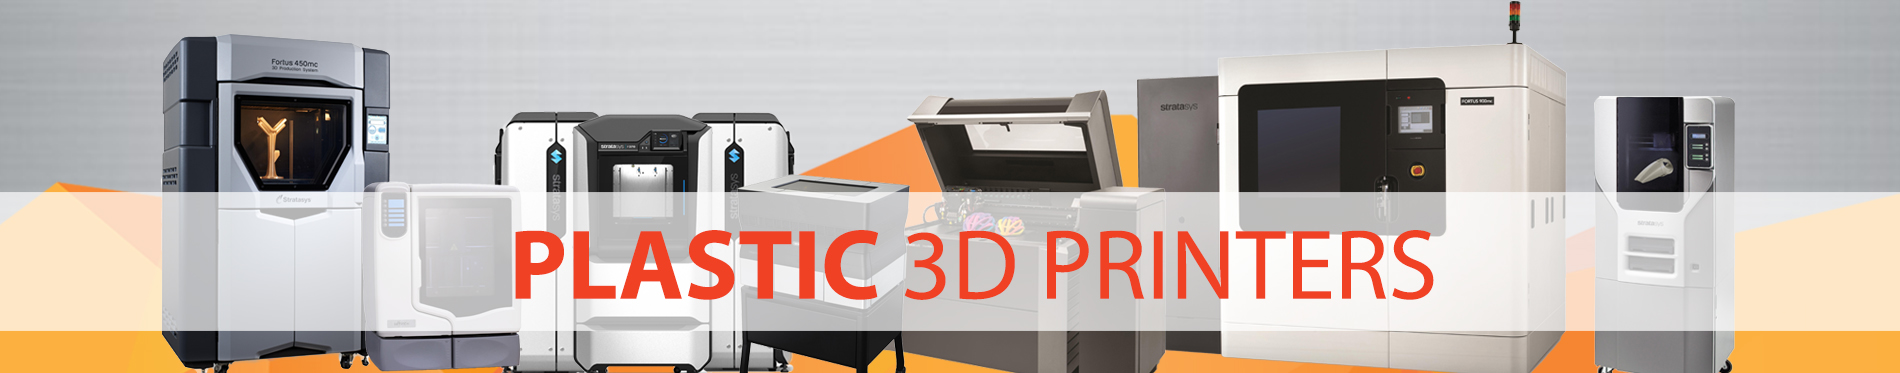 Stratasys Plastic 3D Printer | 3D Printing Materials